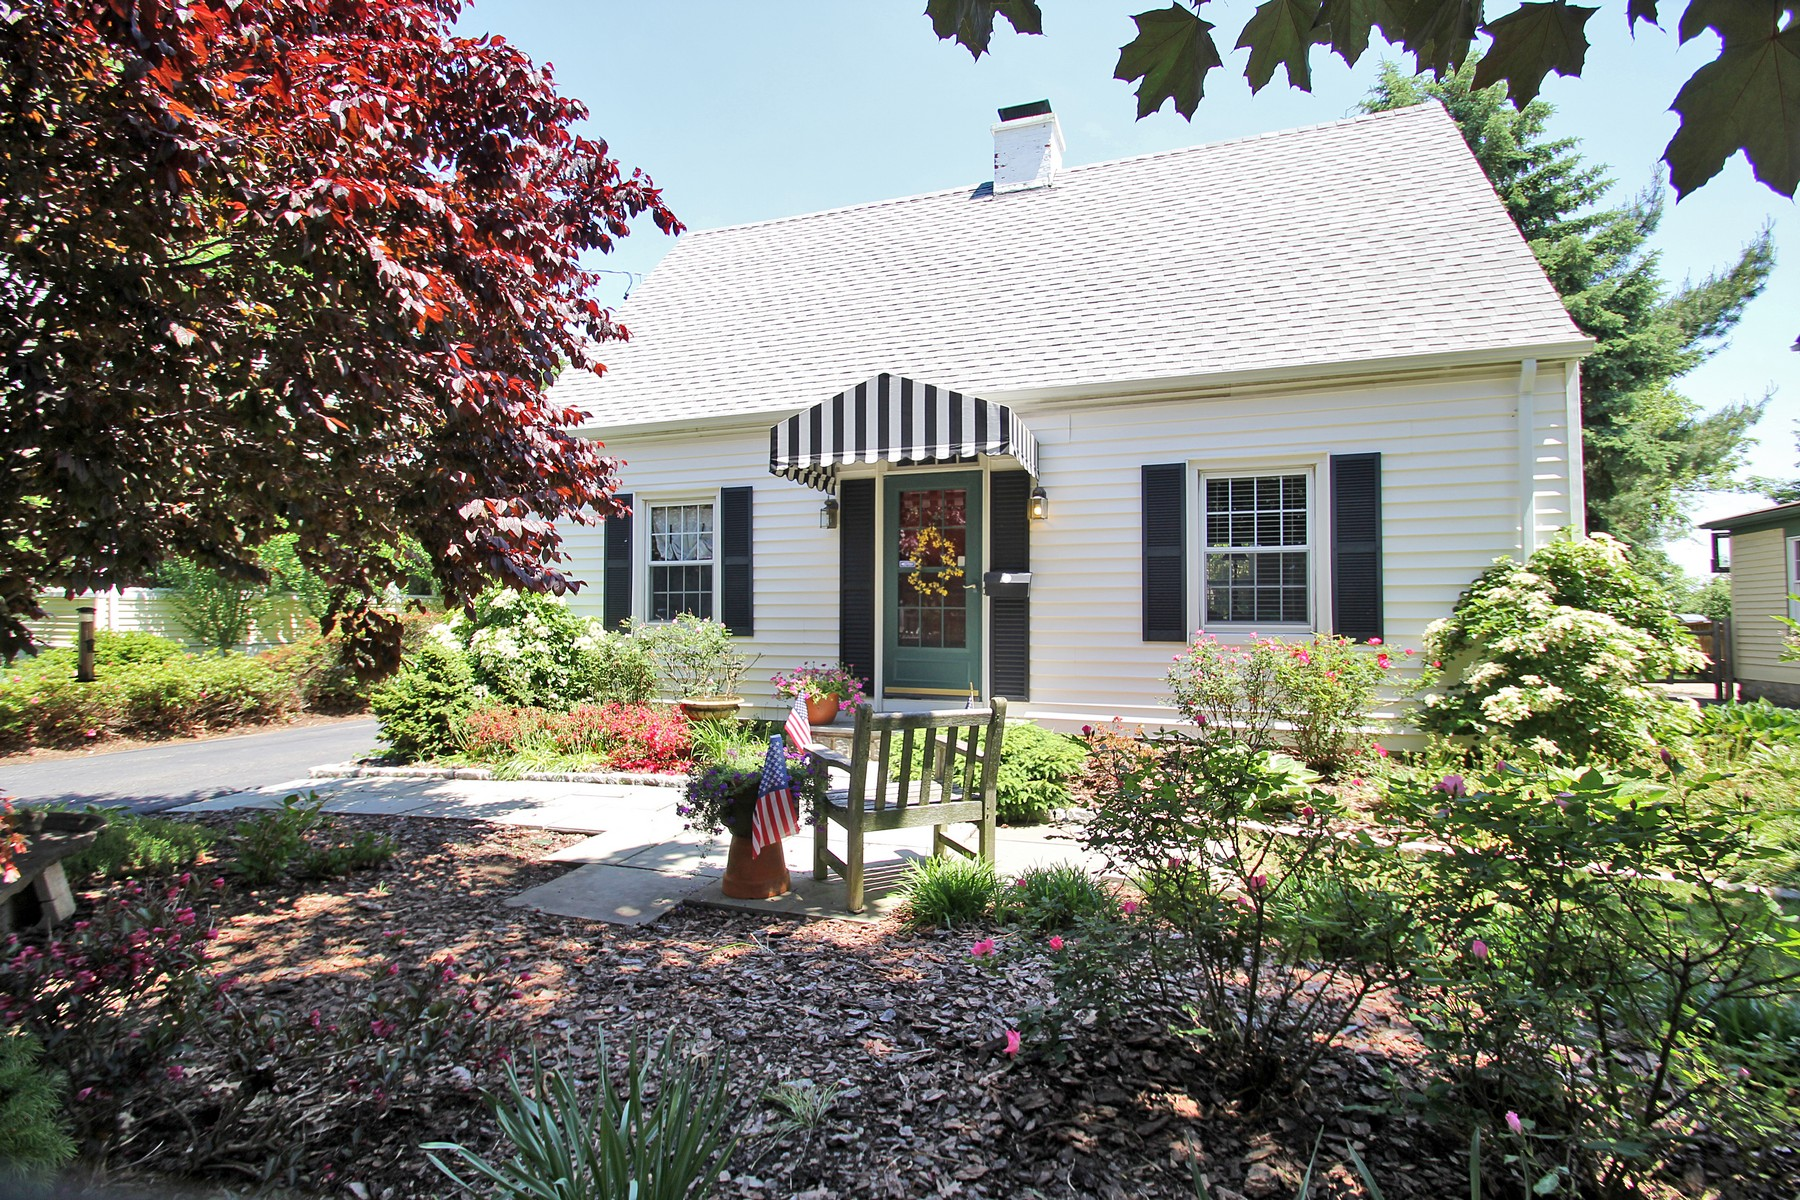 Property For Sale at Charming, Beautifully Maintained Cape Cod Home